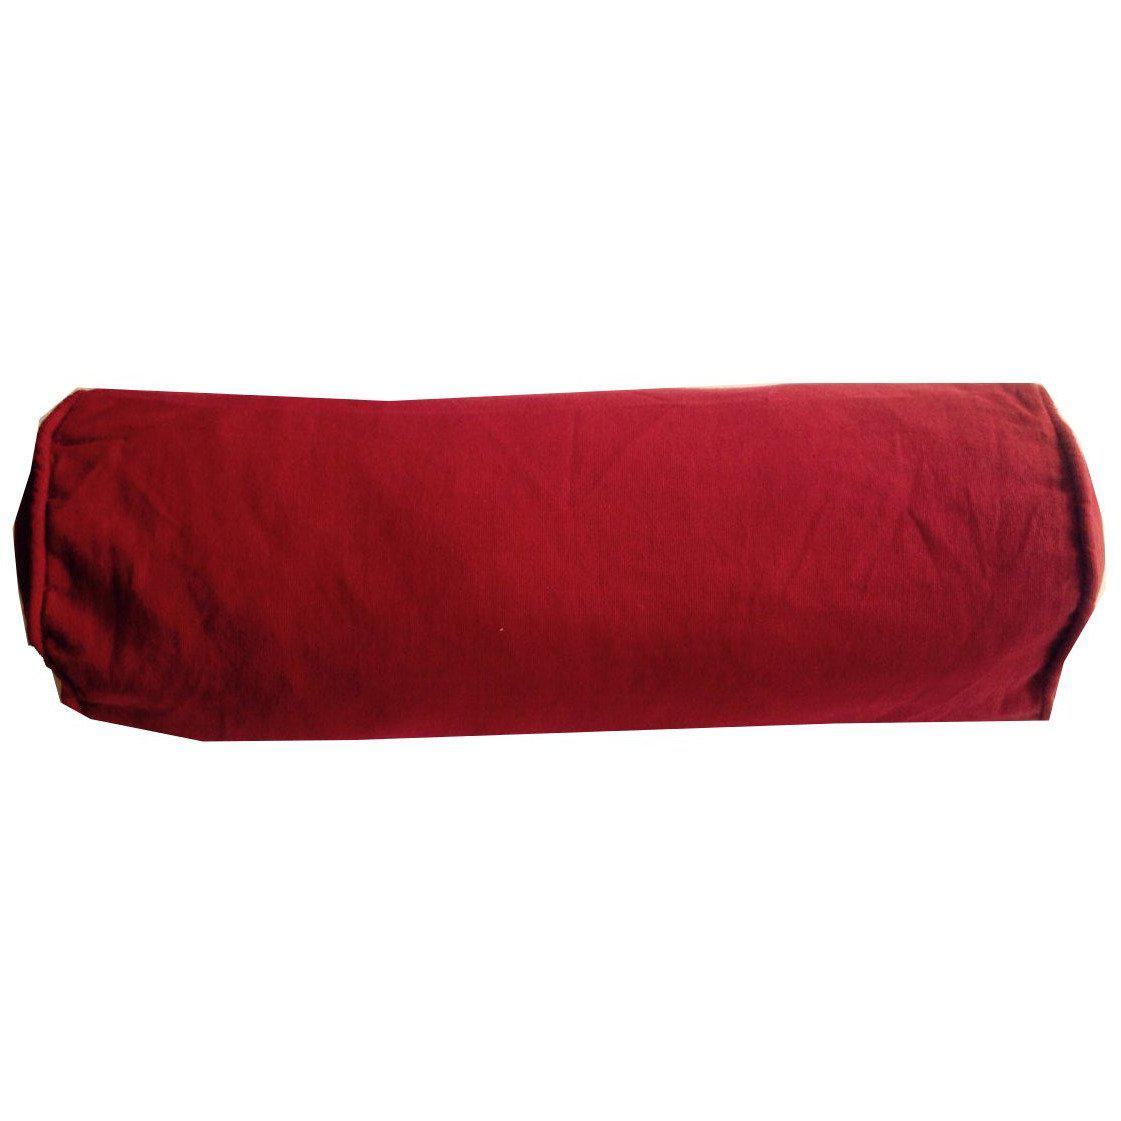 bolster yoga small klein yogishop buy at en sandbag online pillow kissen yogamats cushion pillows accessories triyoga